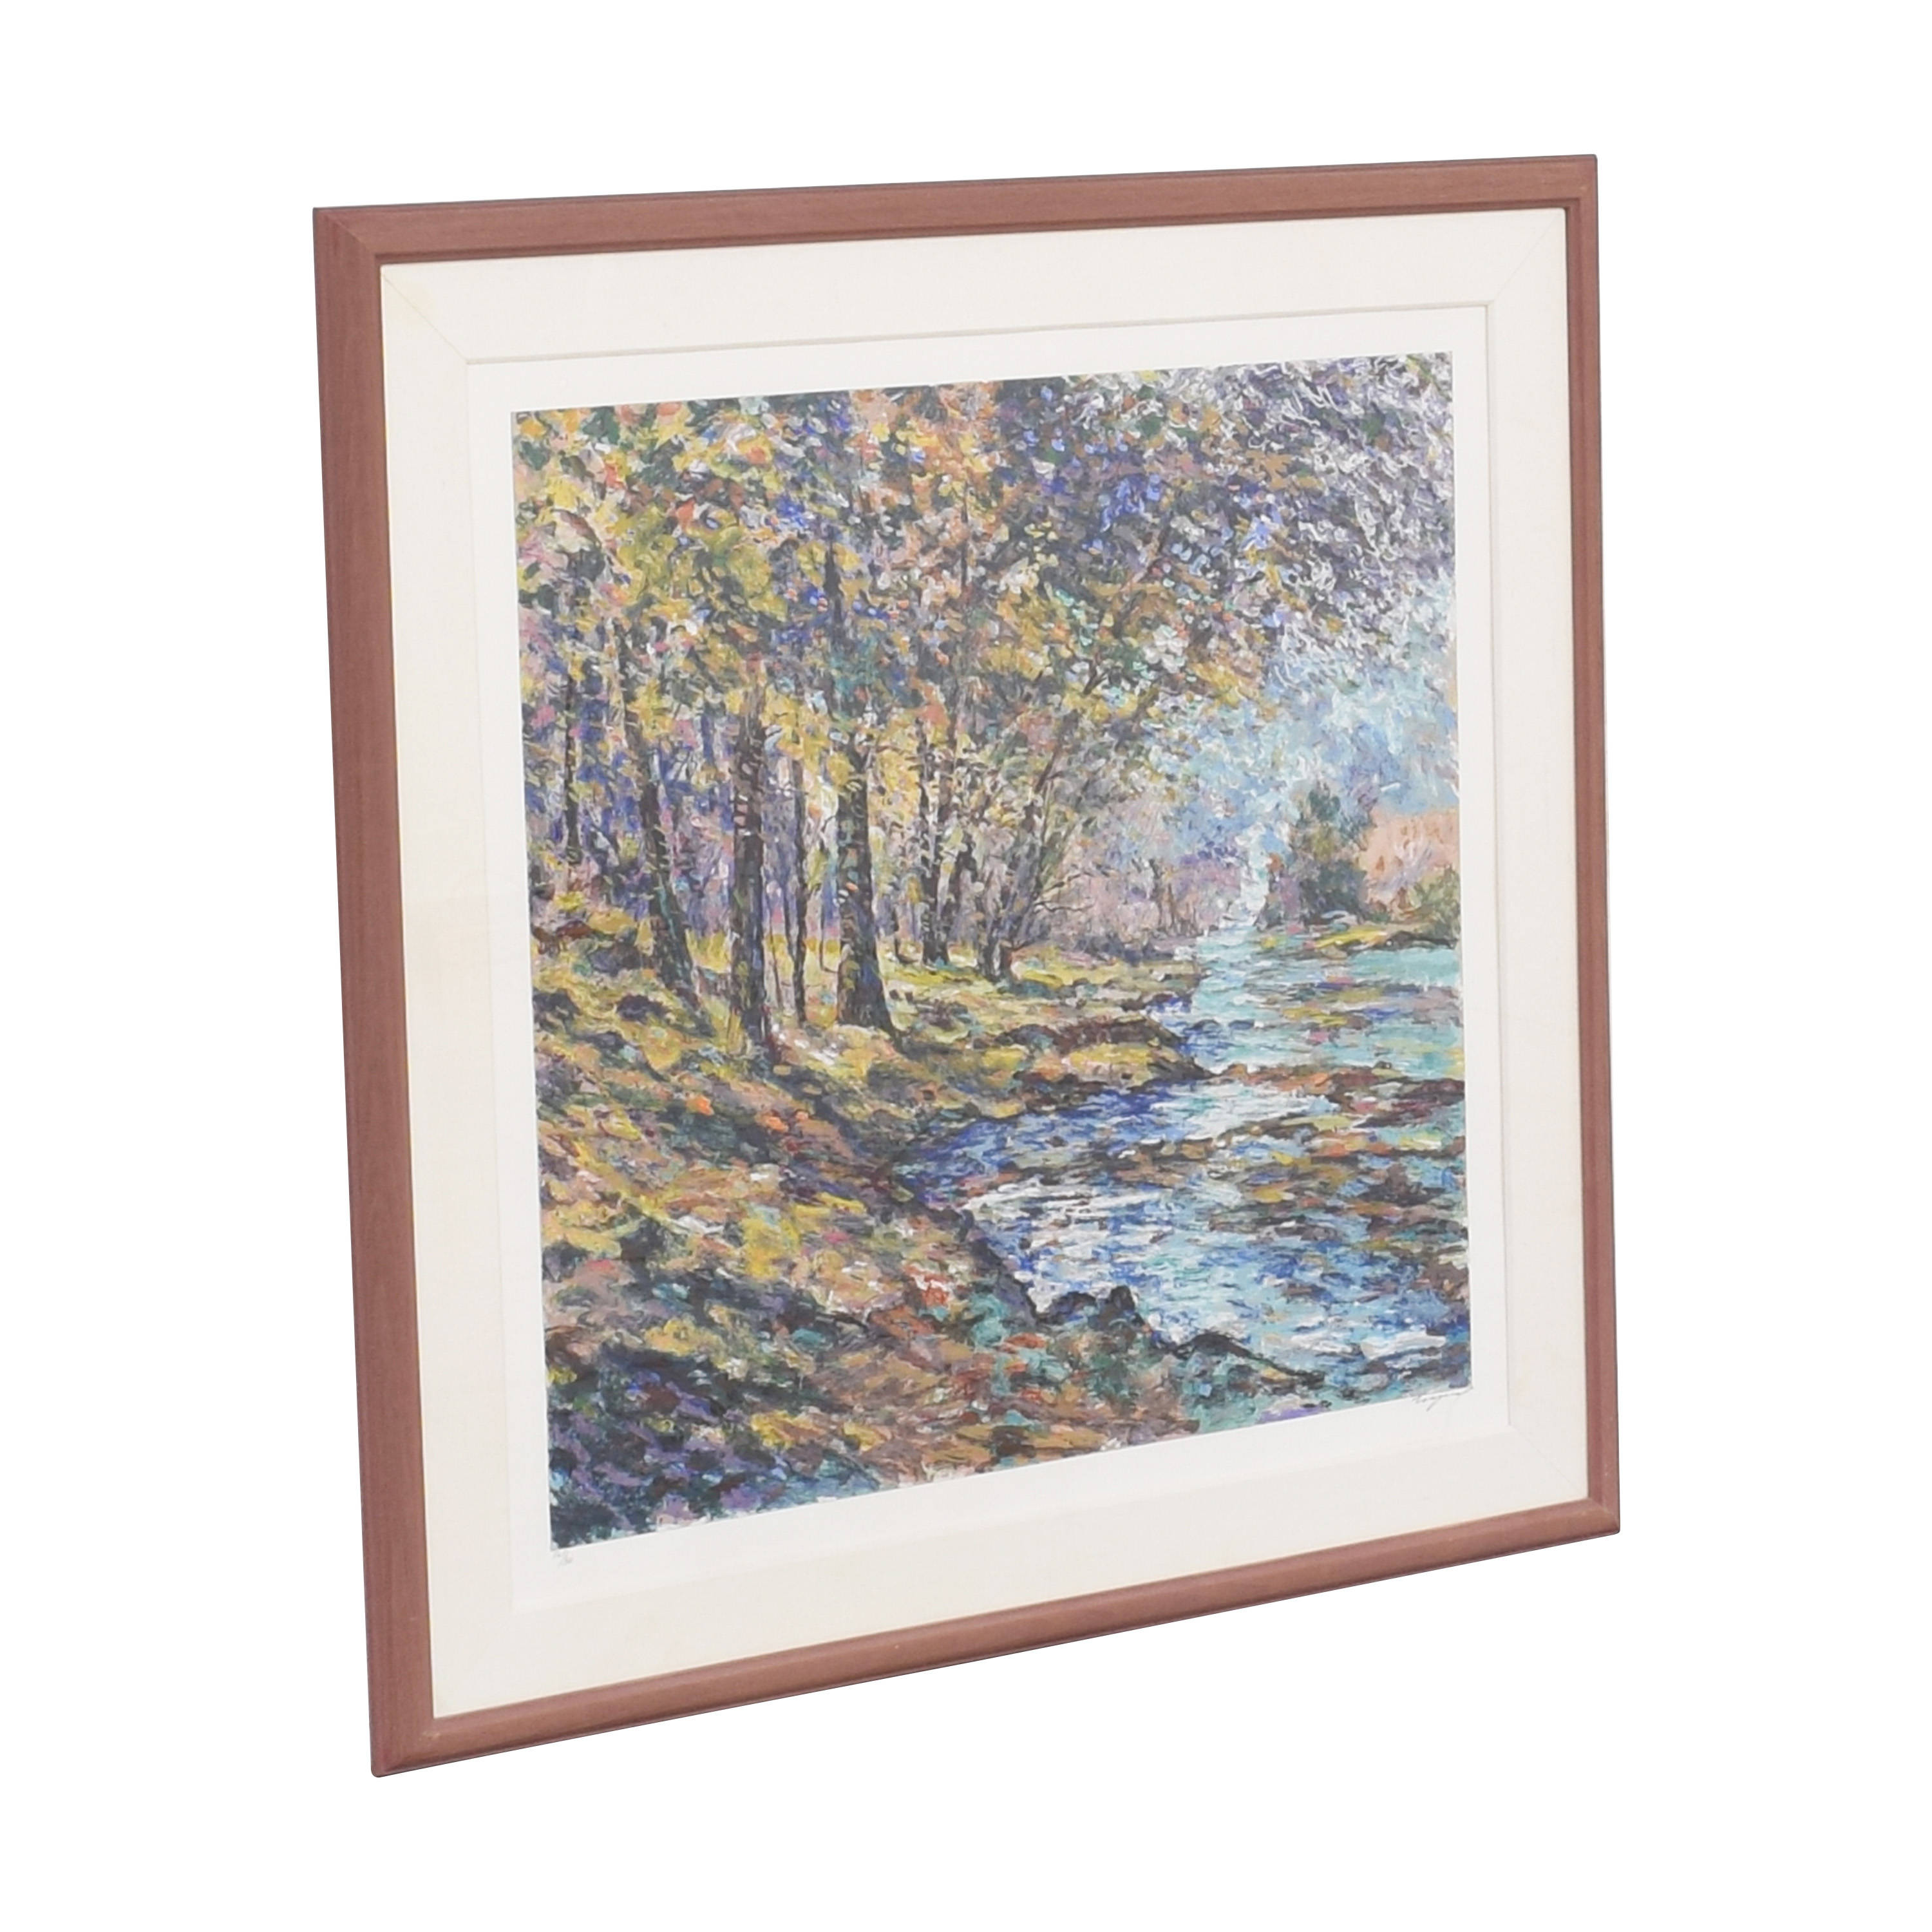 Michael Schofield Timeless Afternoon Wall Art dimensions